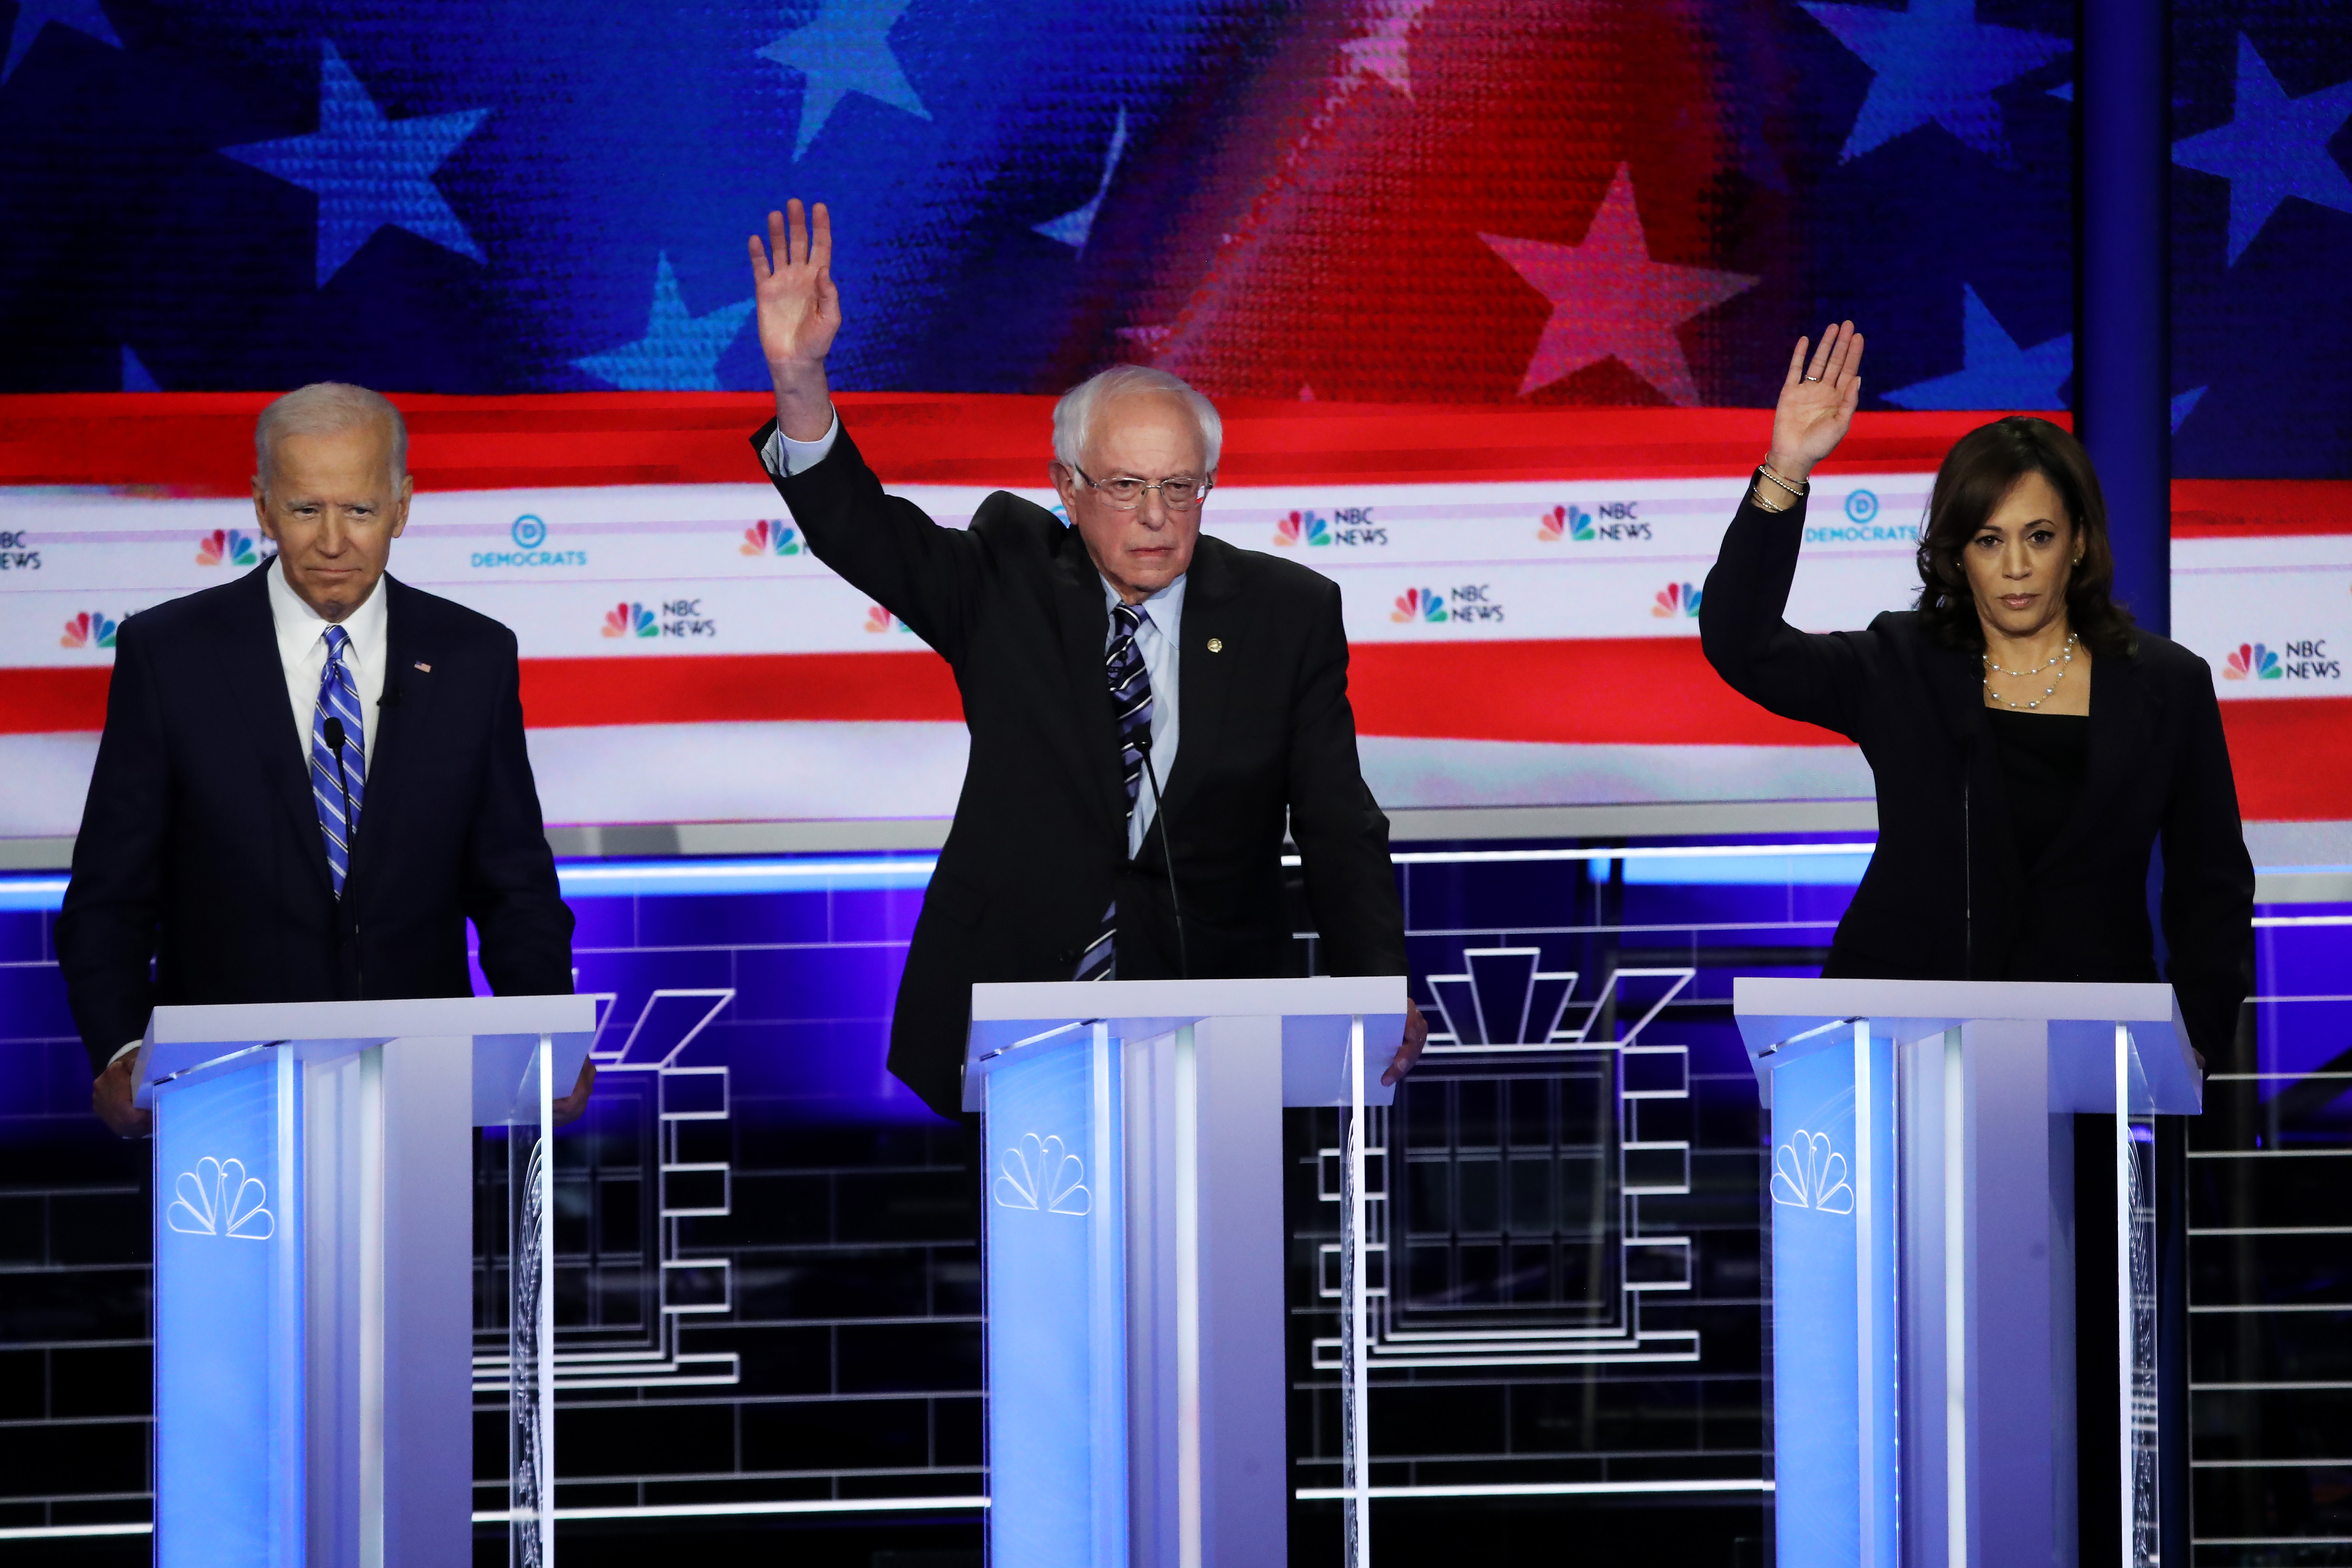 Former Vice President Joe Biden looks on as Sen. Bernie Sanders and Sen. Kamala Harris raise their hands during the second night of the first Democratic presidential debate on June 27, 2019 in Miami, Florida. (Photo by Drew Angerer/Getty Images)